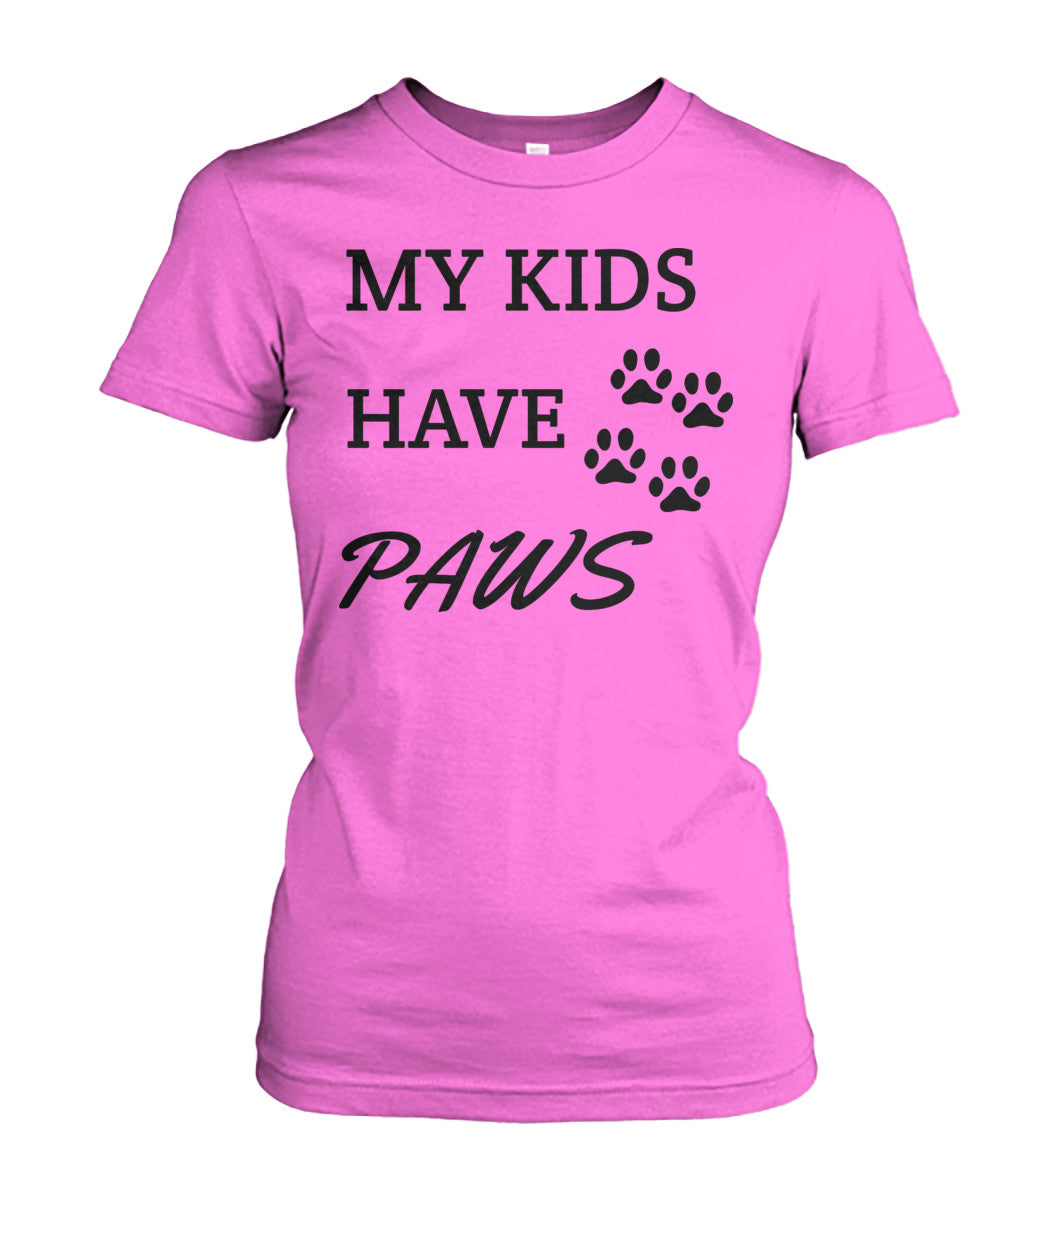 My Kids Have Paws - Women's T-Shirt